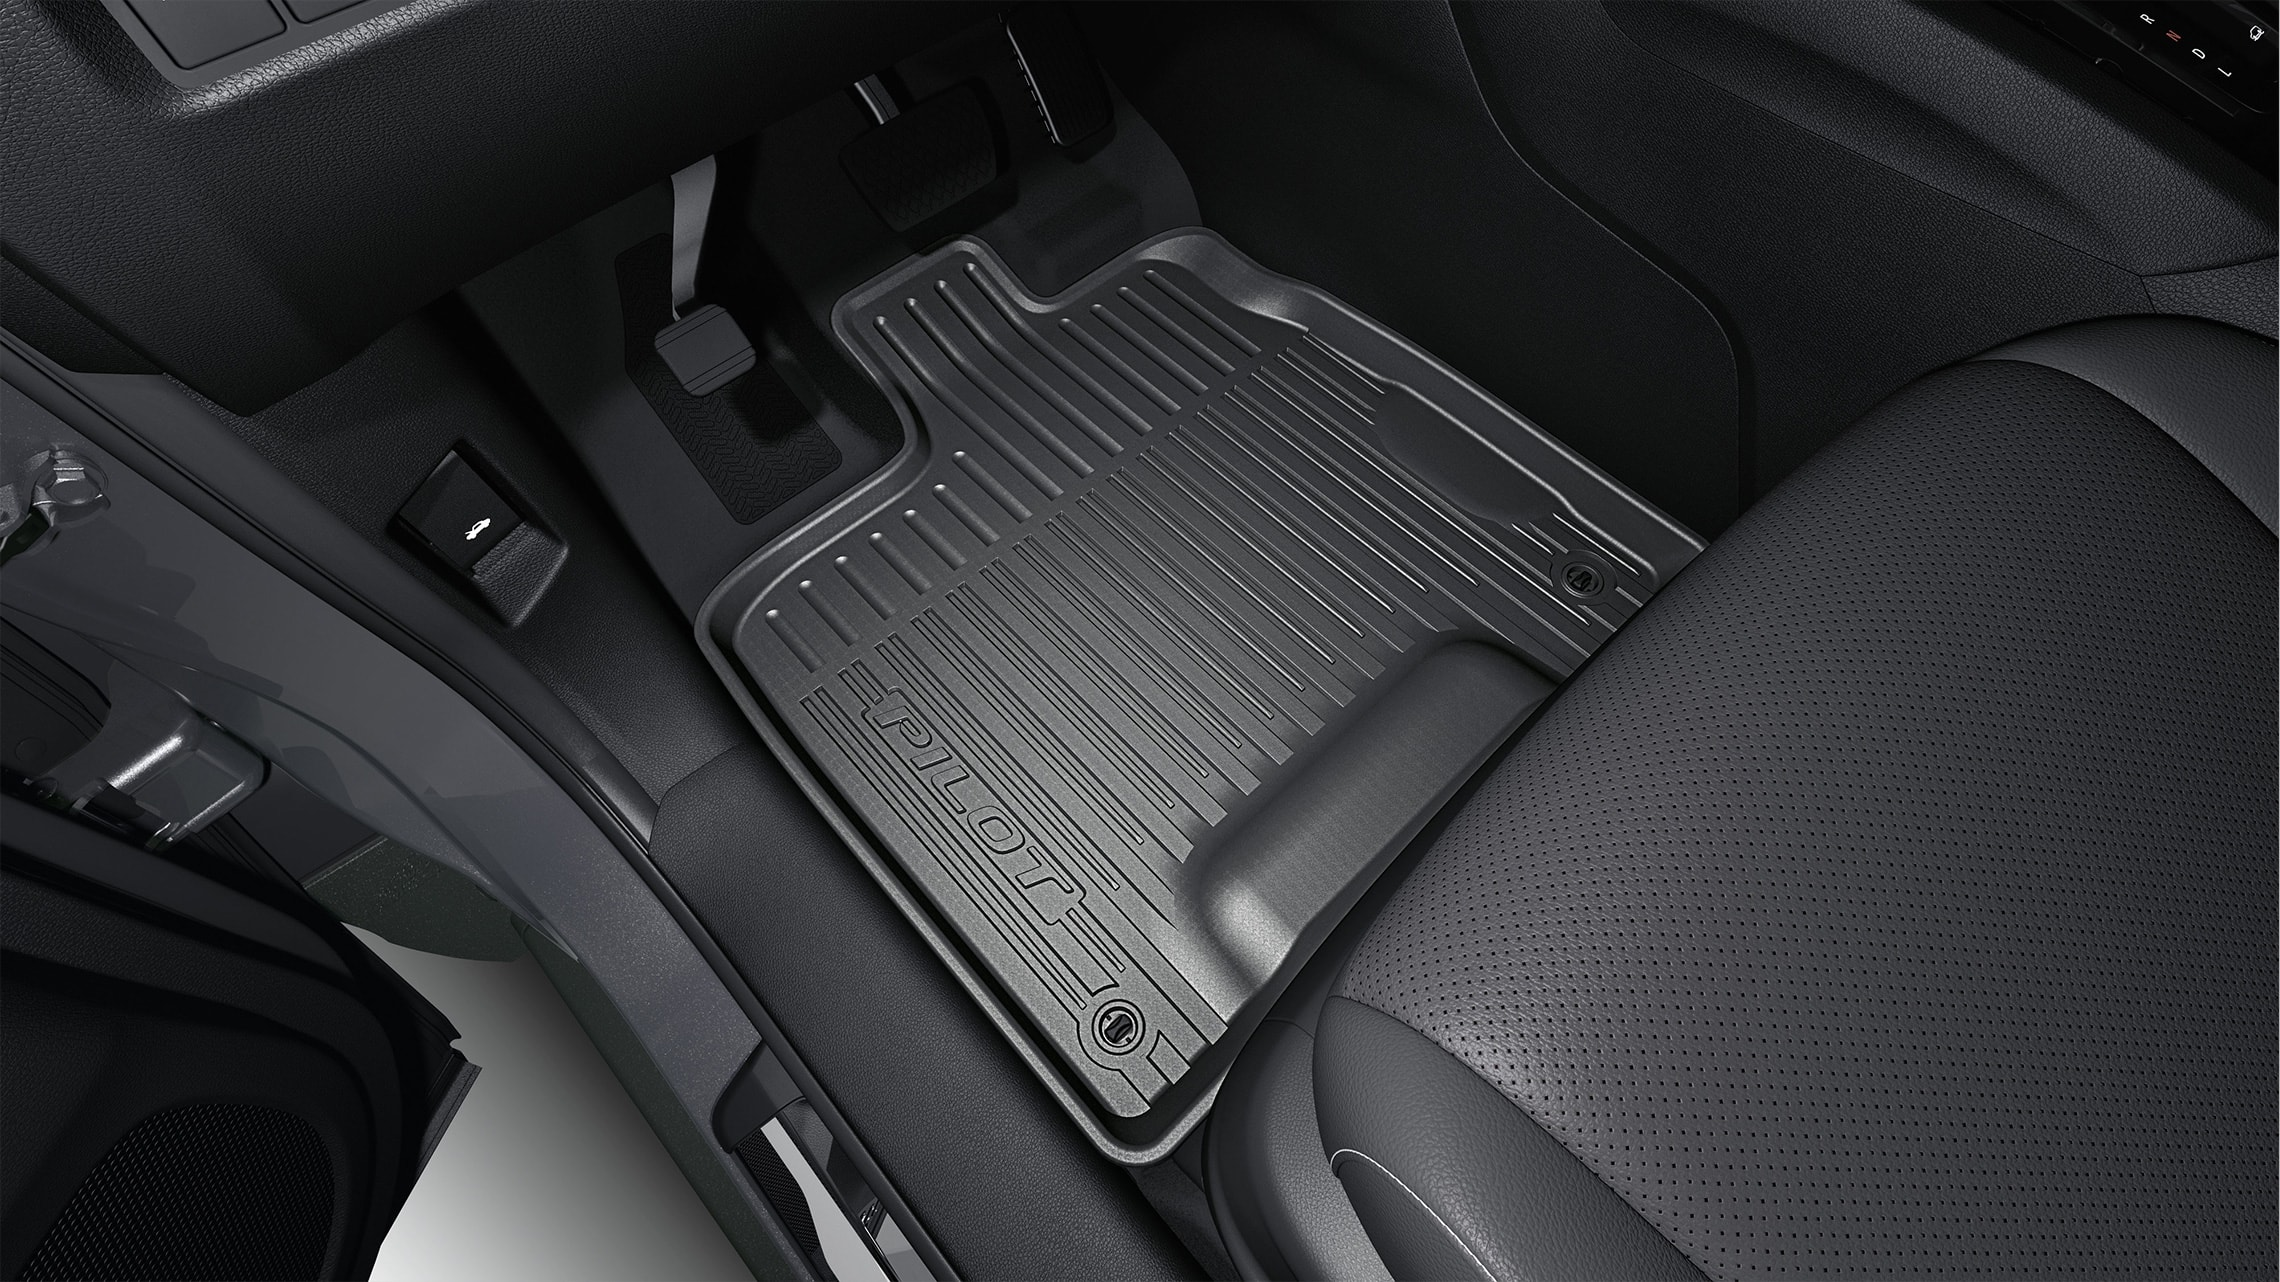 All-Season Floor Mats detail on 2021 Honda Pilot.